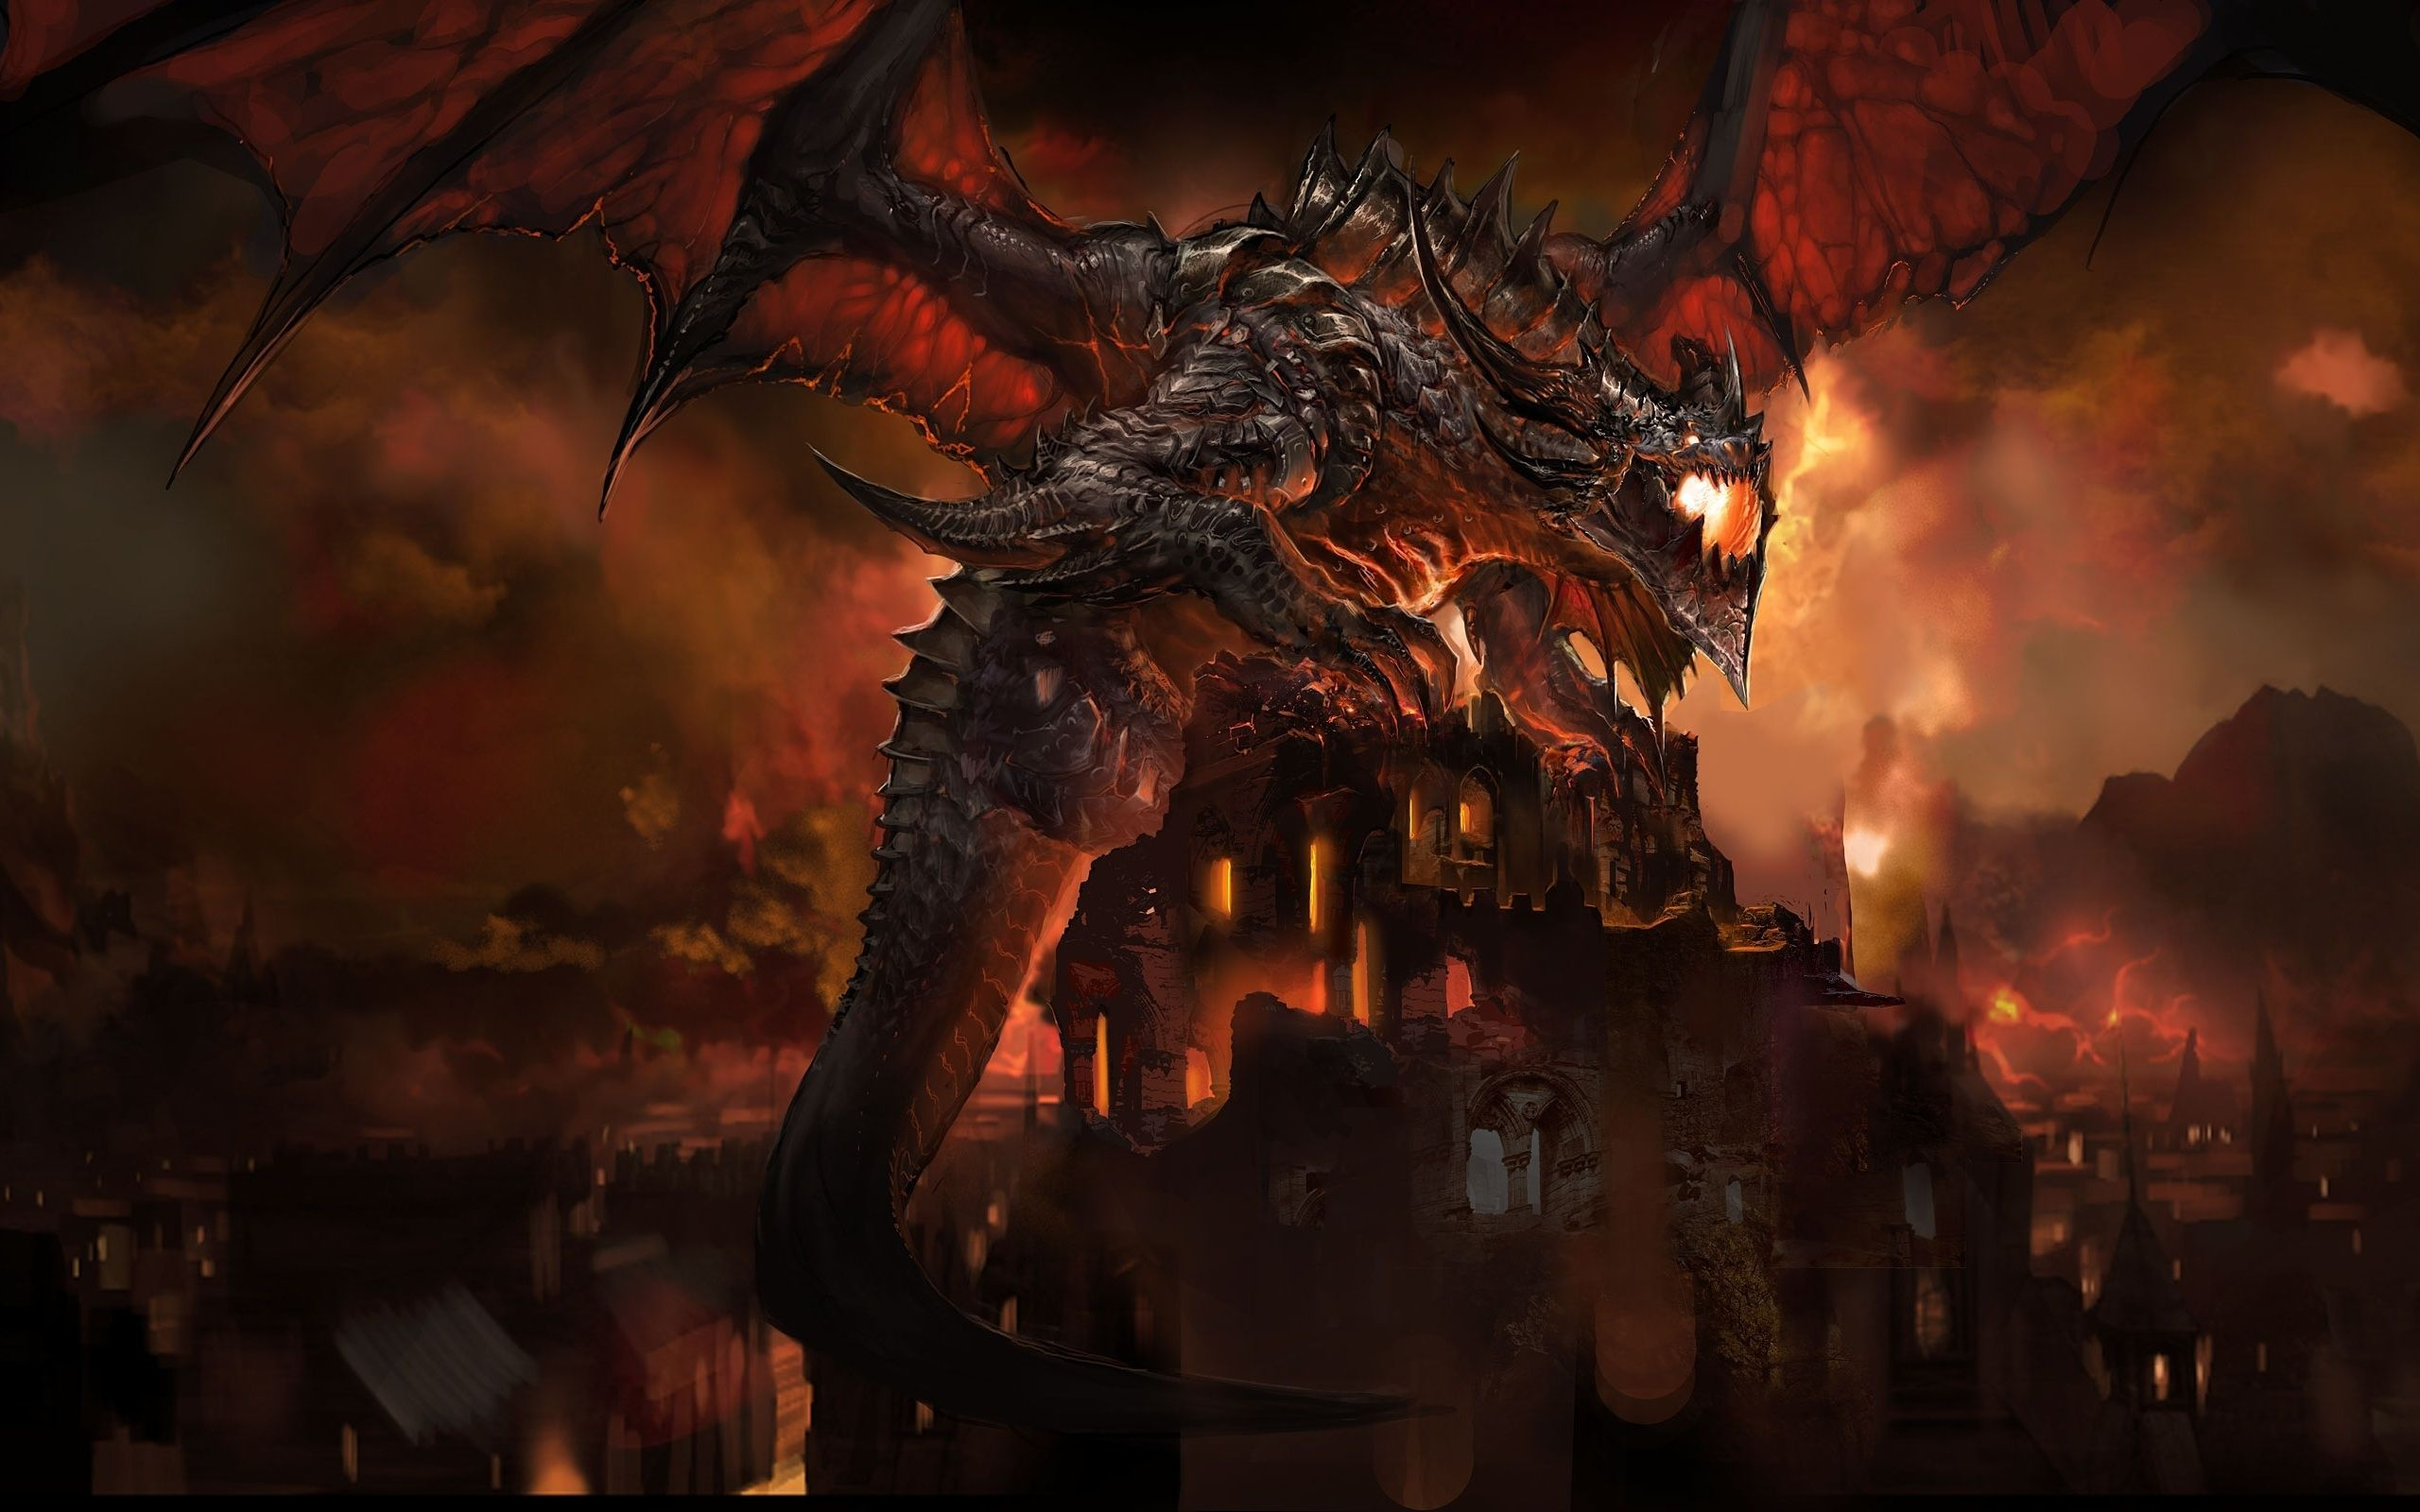 Cool Picture Thread 8 Page 19 Spacebattles Com World Of Warcraft Wallpaper Dragon Pictures World Of Warcraft Cataclysm